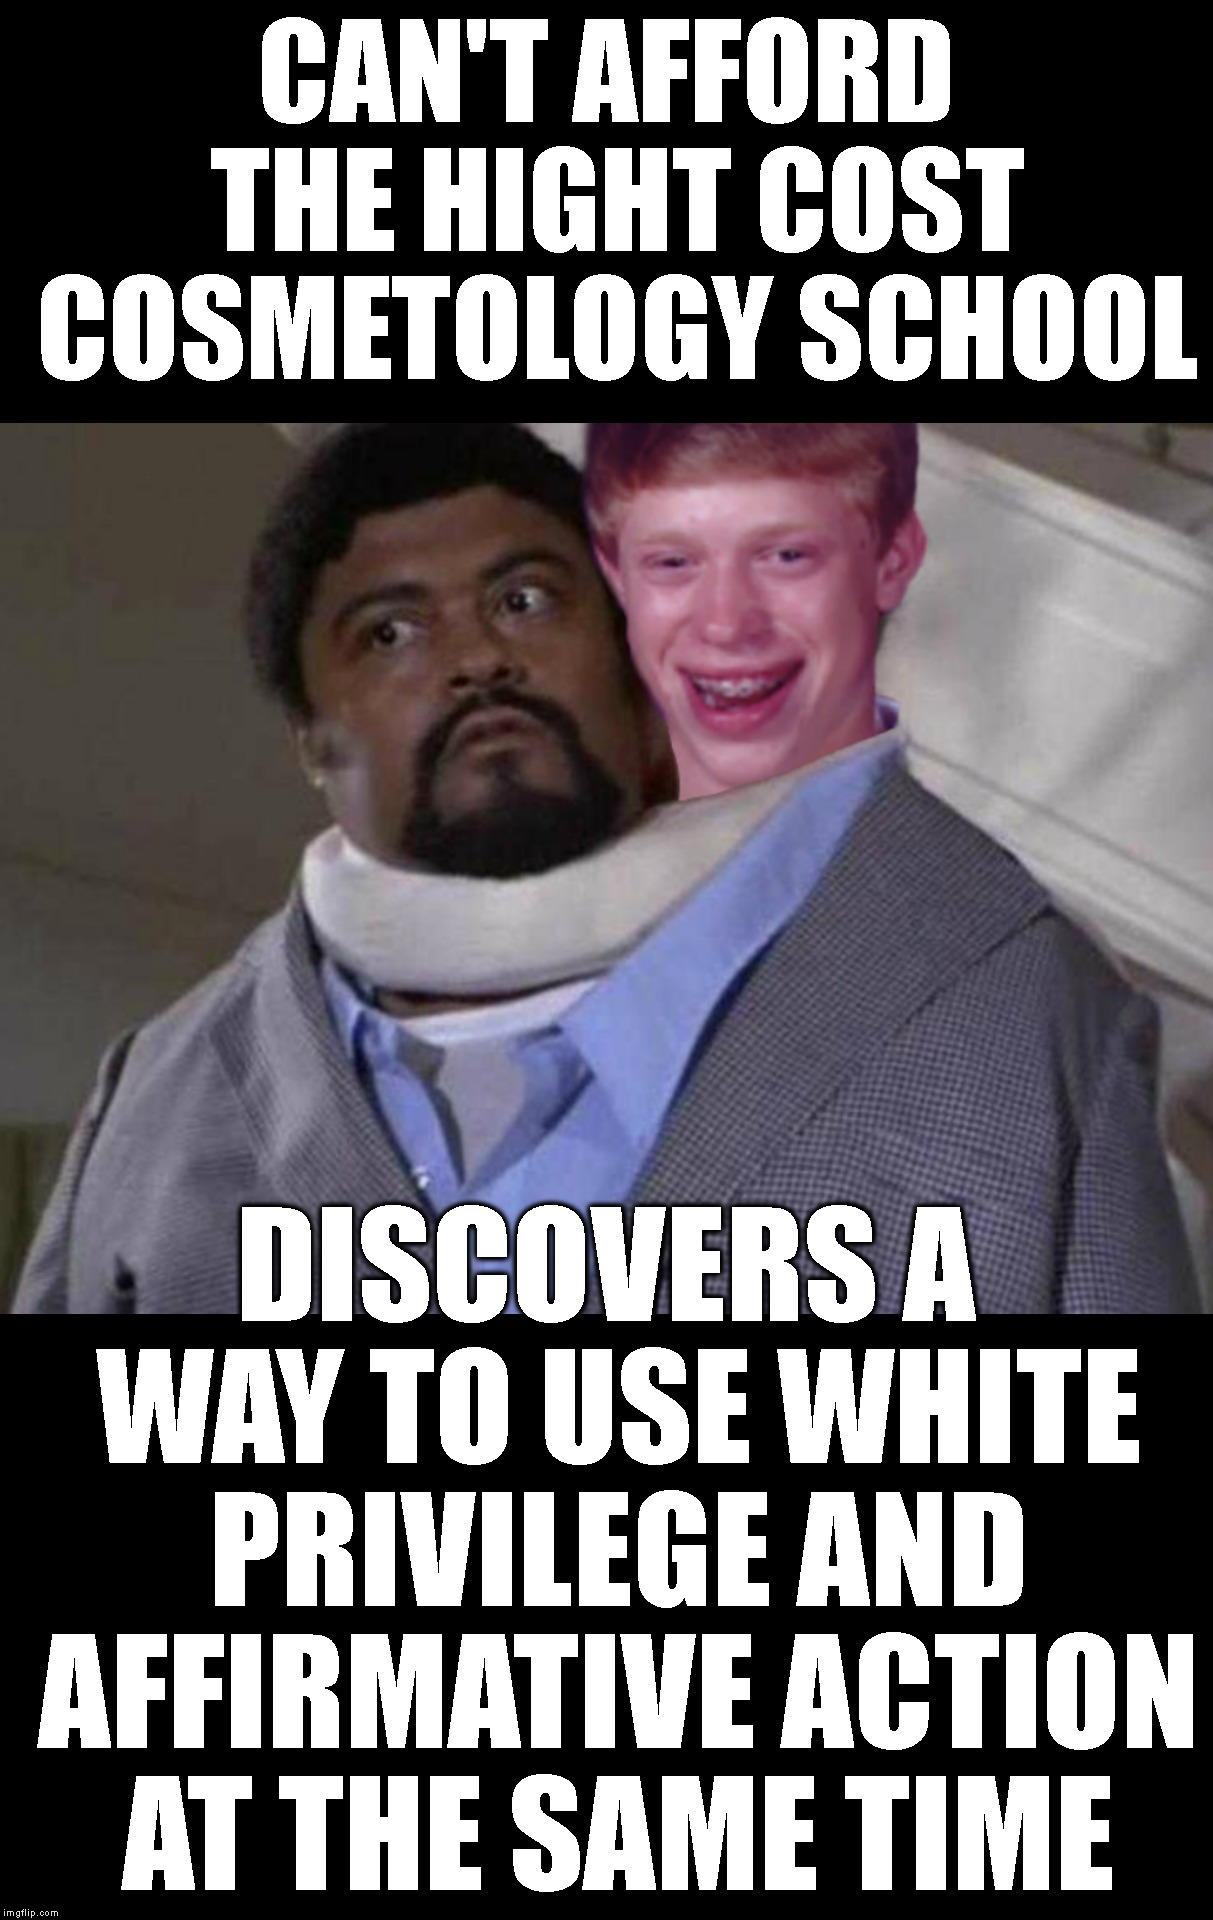 Cost Effective Race Relations | CAN'T AFFORD THE HIGHT COST COSMETOLOGY SCHOOL DISCOVERS A WAY TO USE WHITE PRIVILEGE AND AFFIRMATIVE ACTION AT THE SAME TIME | image tagged in white privilege,affirmative action,blb,bad luck brian,college,race card | made w/ Imgflip meme maker